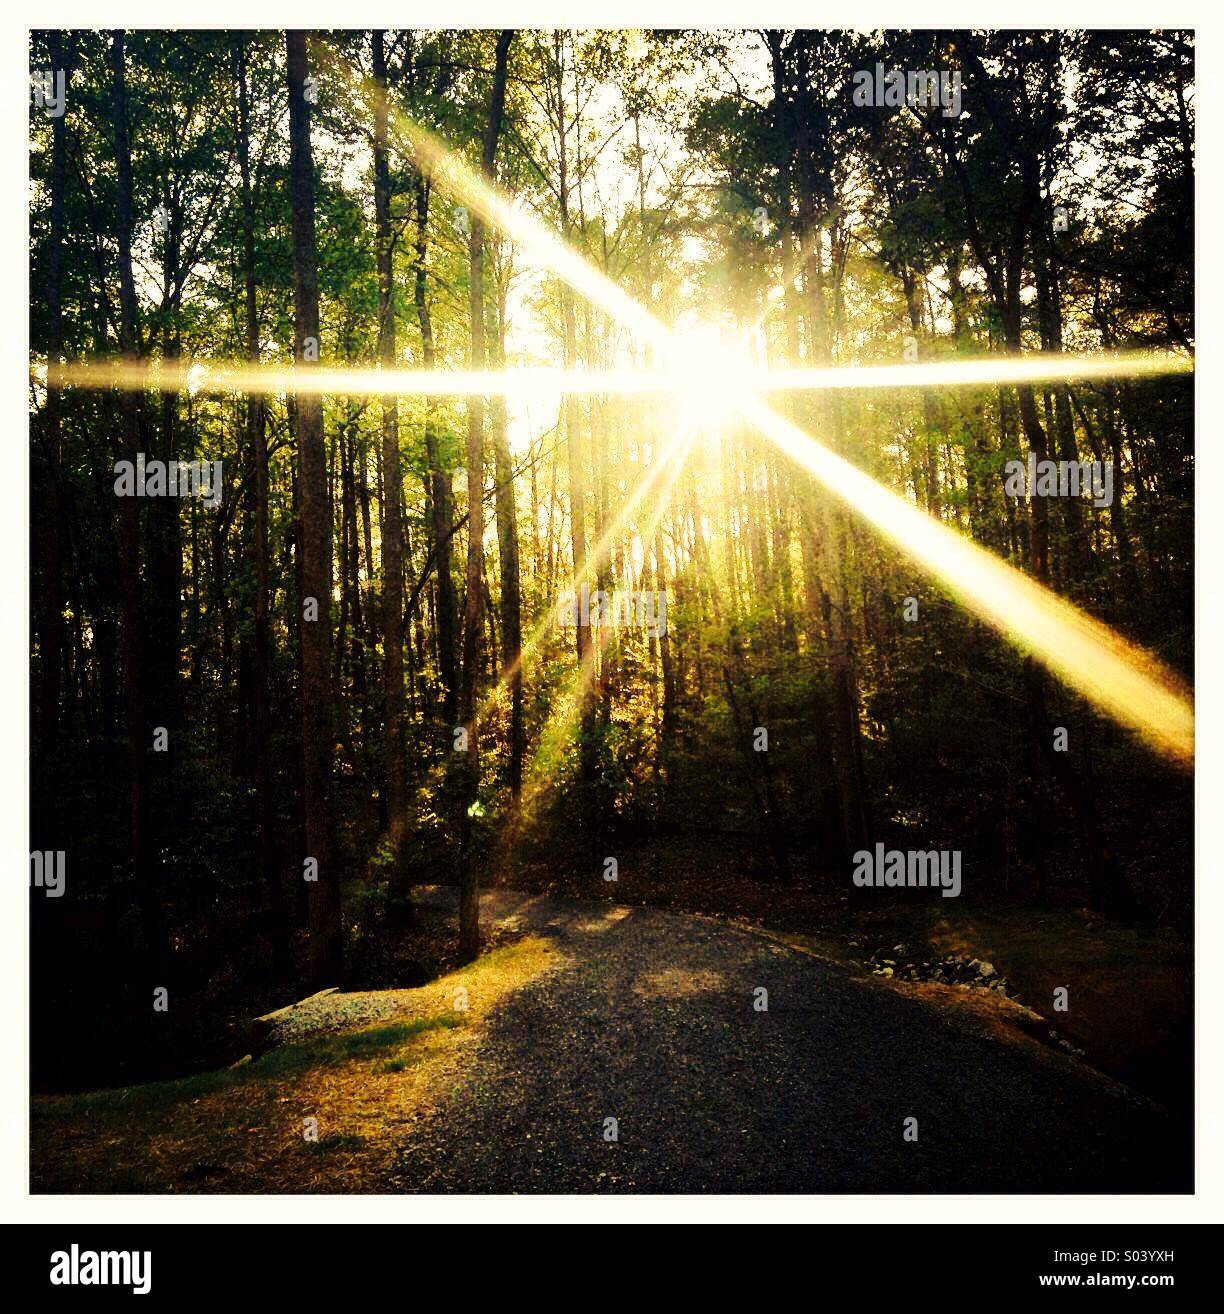 Sunlight coming through trees in the woods - Stock Image